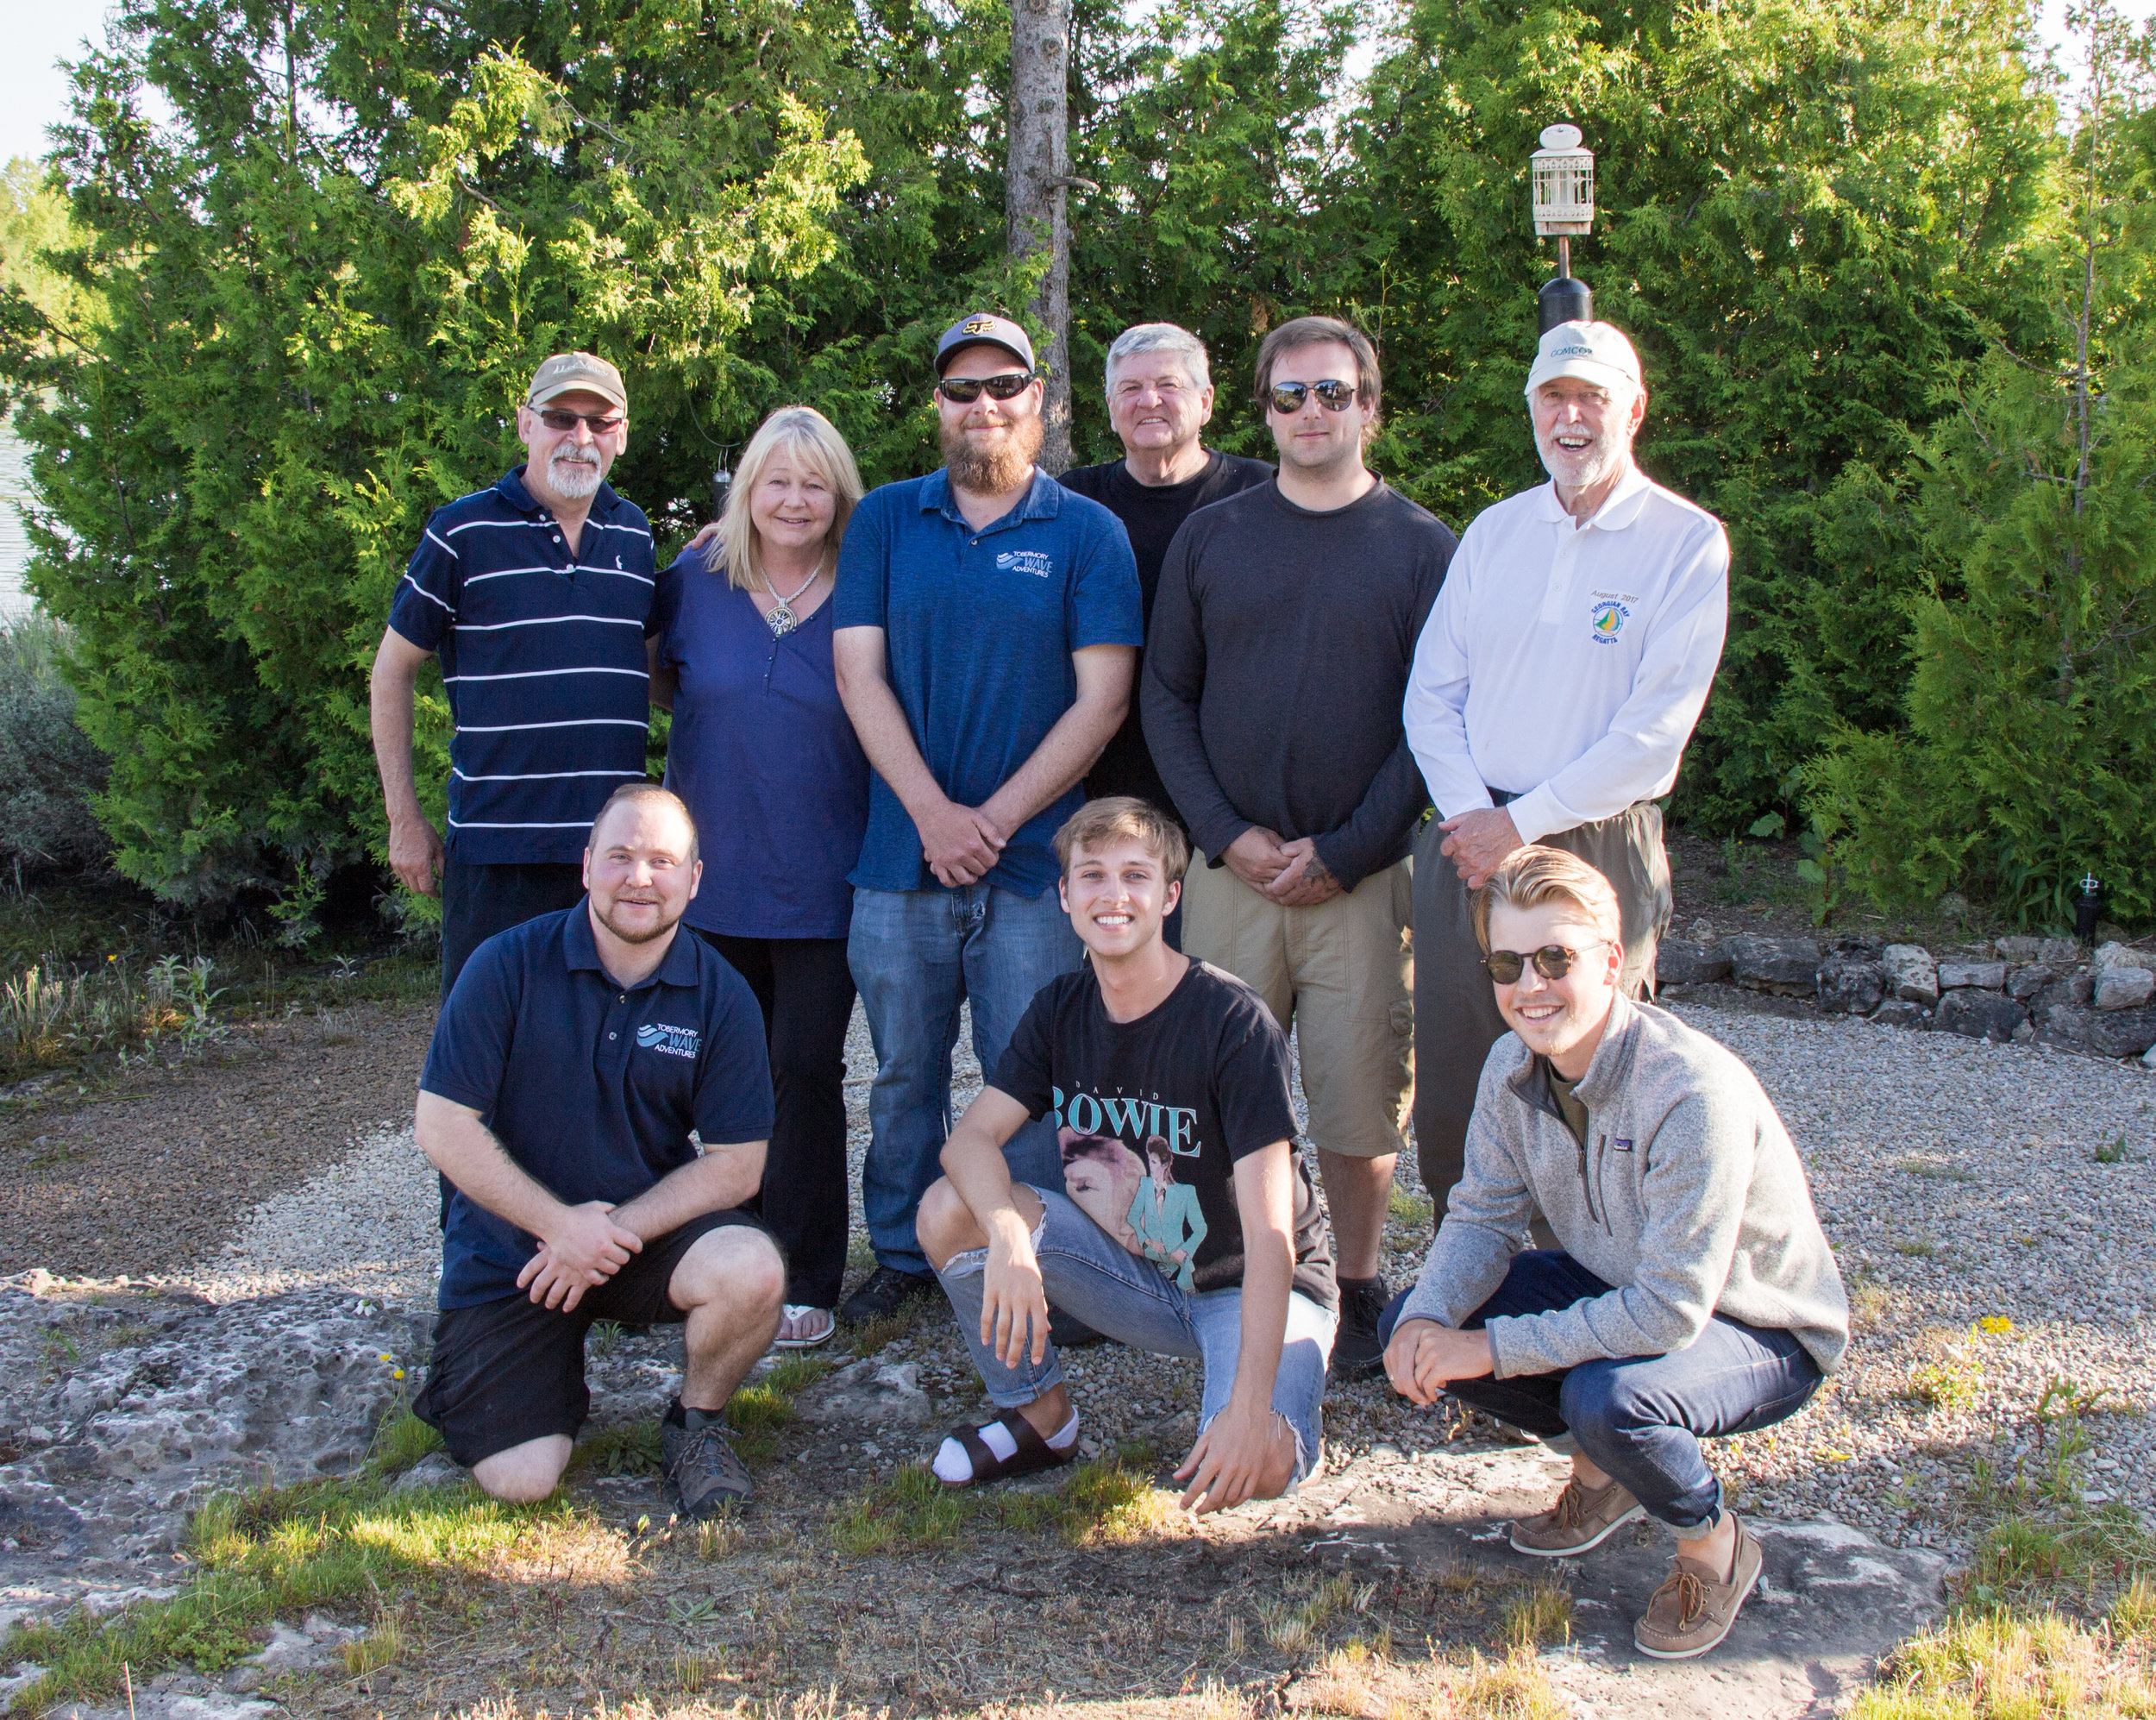 Meet the team! We're so excited to make your trip to Tobermory a special one.